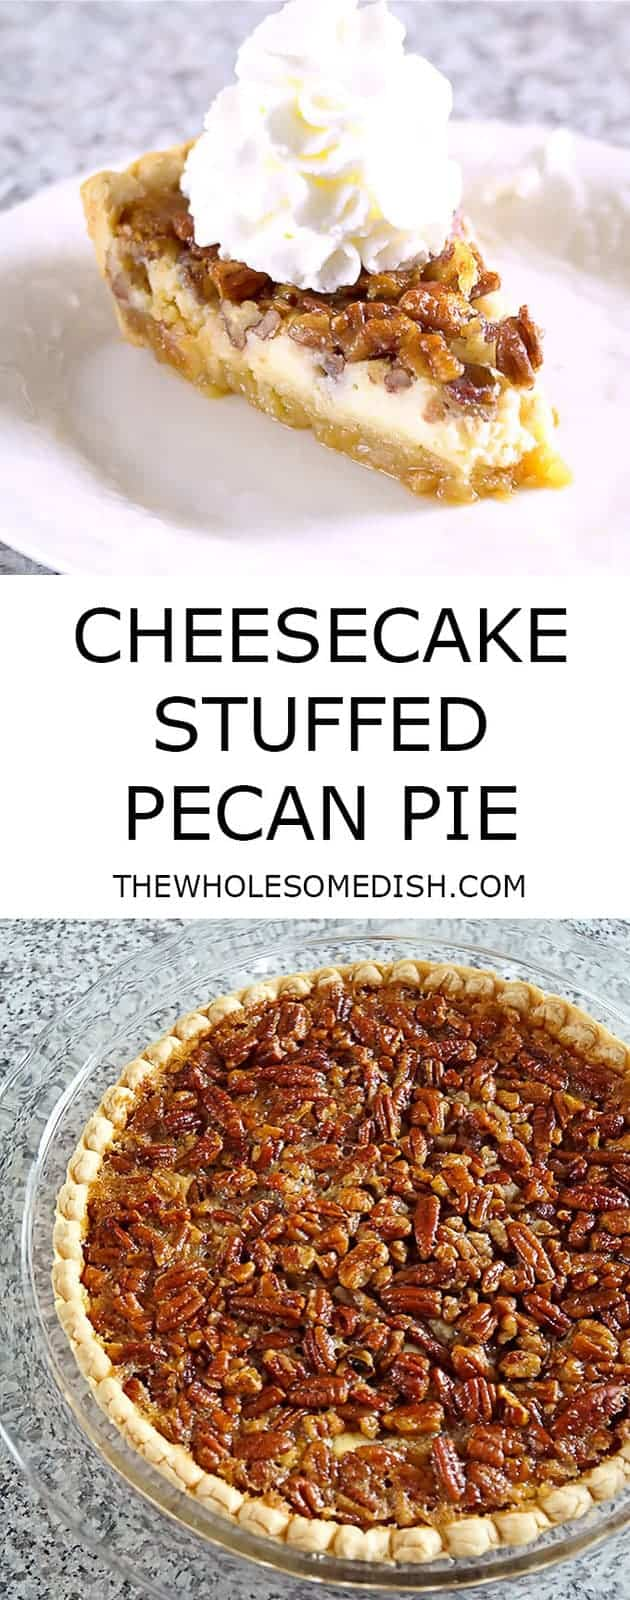 Cheesecake Stuffed Pecan Pie has a crunchy sweet pecan pie top layer and a creamy cheesecake bottom layer.  It's a perfect dessert for the holidays! #cheesecake #pecan #pie #pecanpie #recipe #holiday #holidayrecipes #dessert #dessertrecipes #Thanksgiving #Christmas #thanksgivingdesserts #christmasdesserts #creamcheese